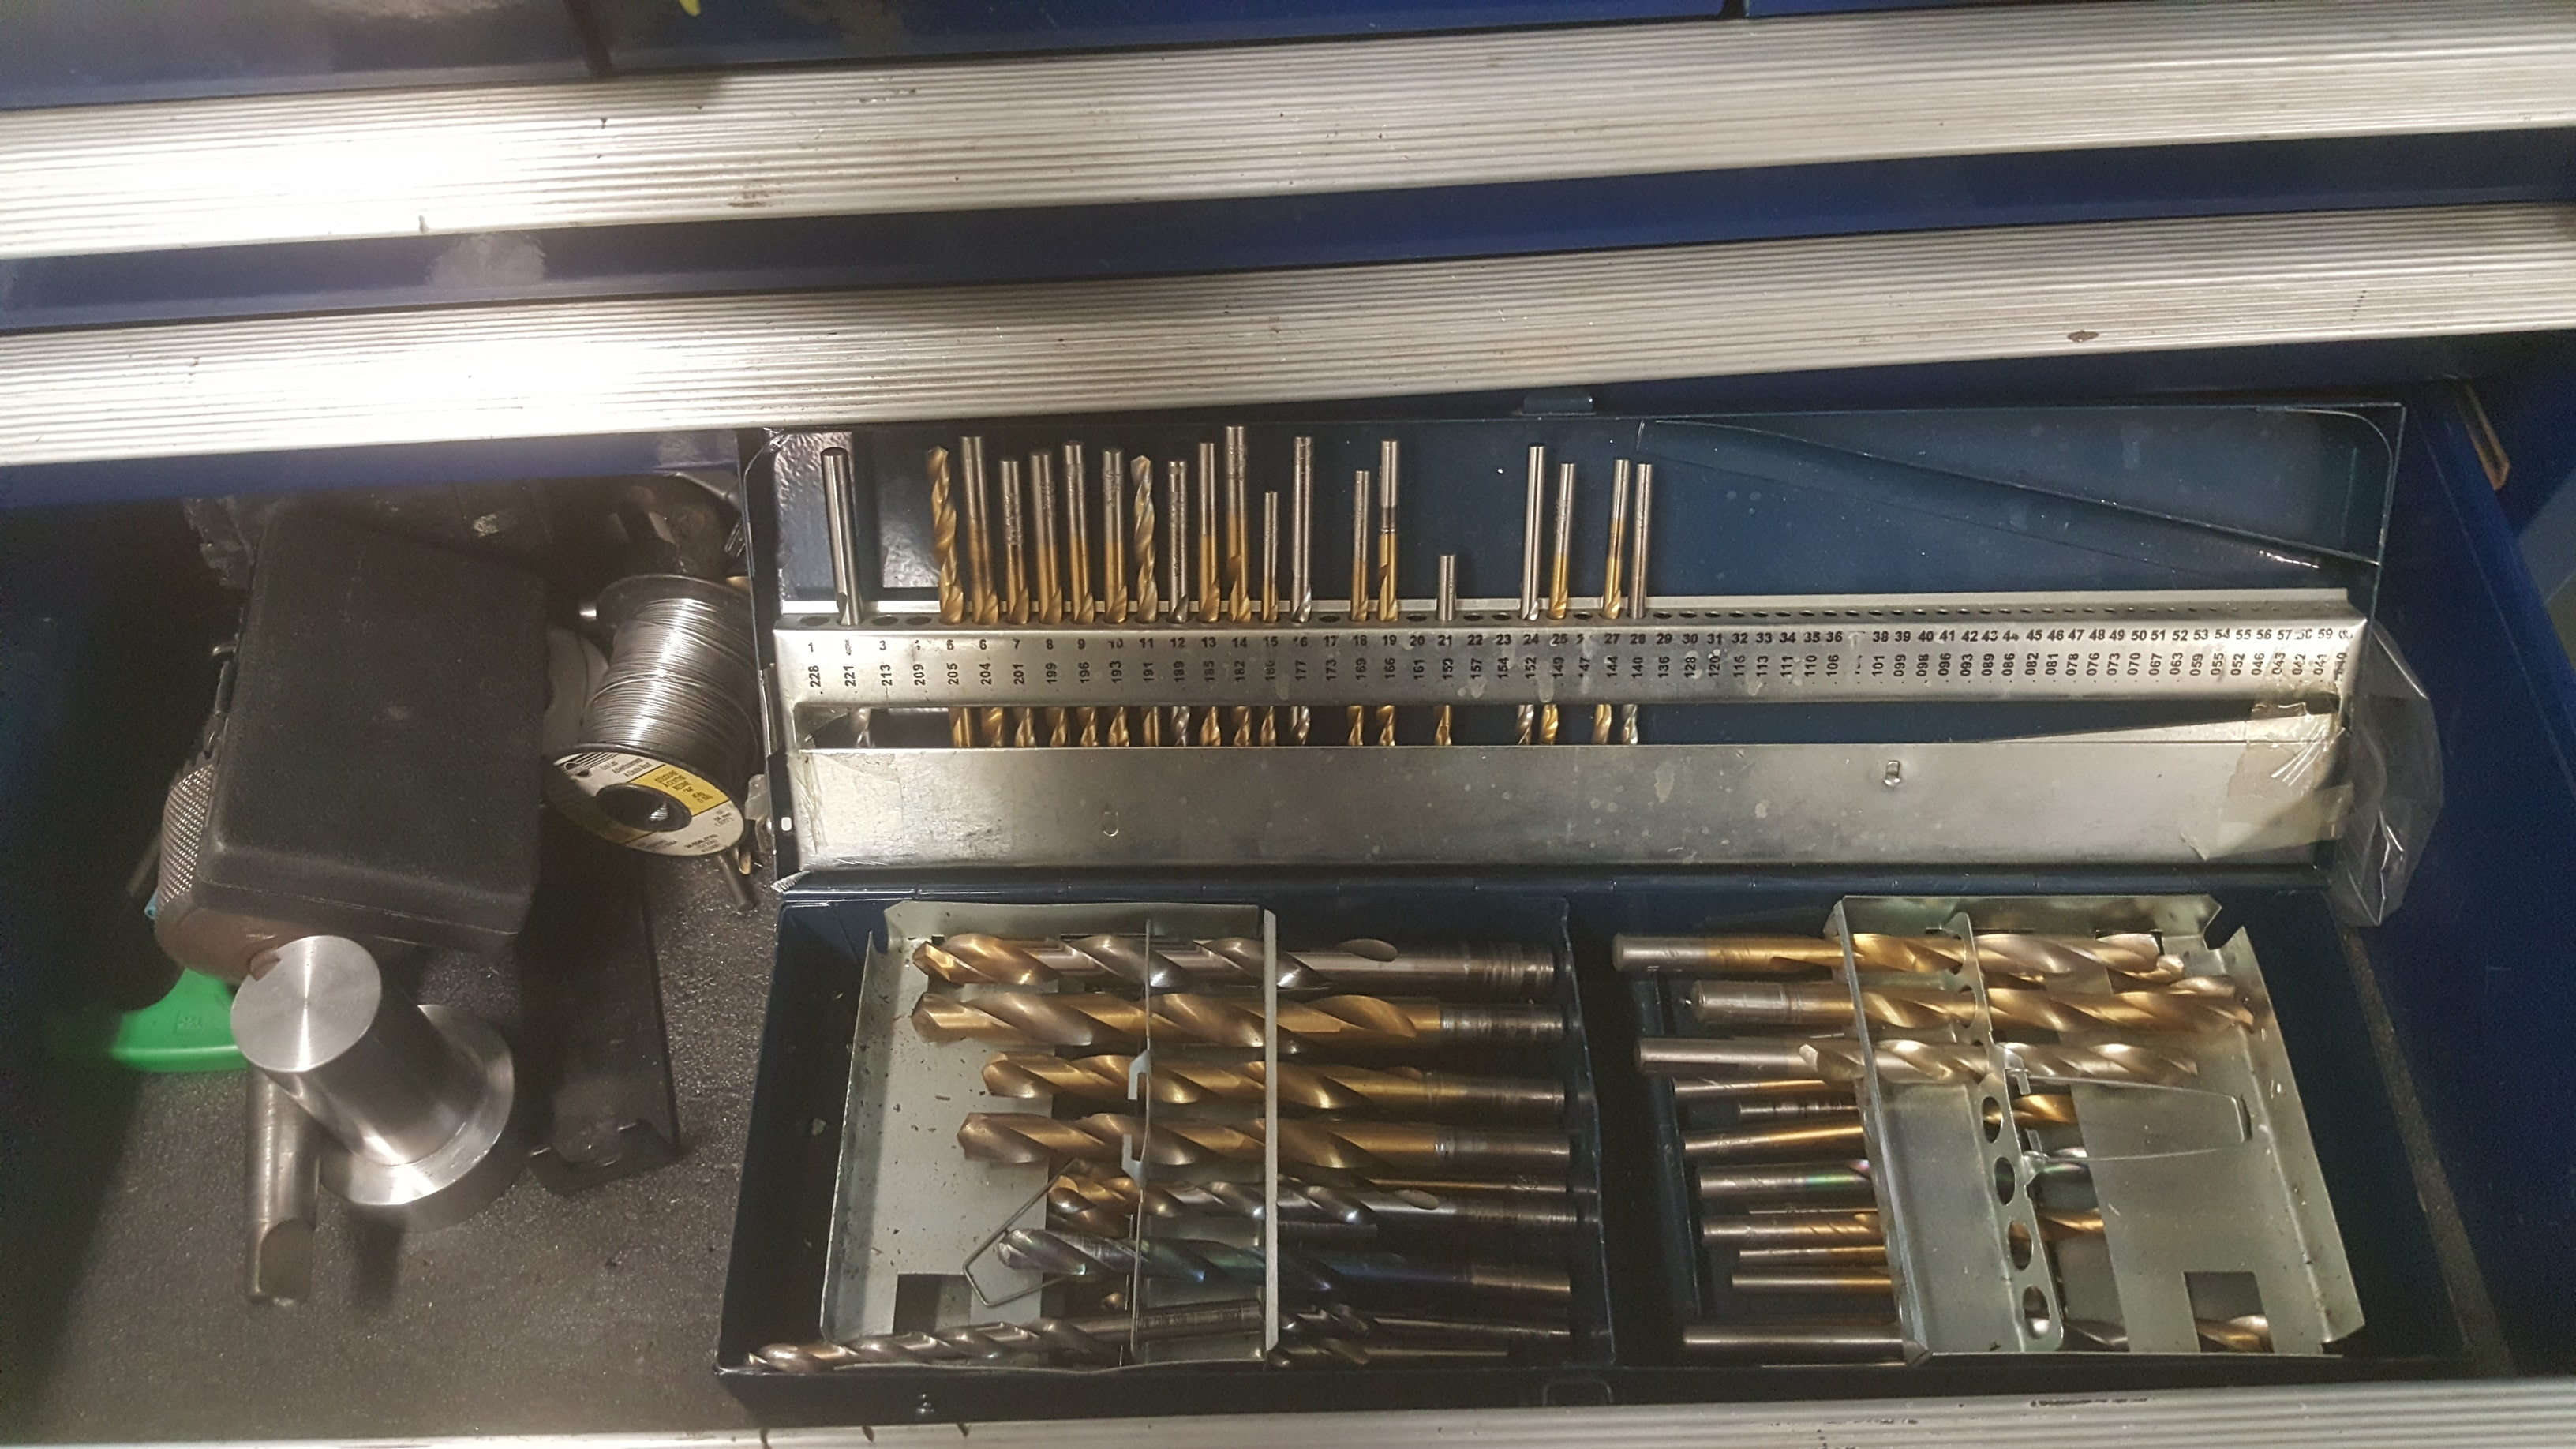 Lot 141 - 20-drawer International rolling tool chest & all contents including: taps, dies, tool sets, and